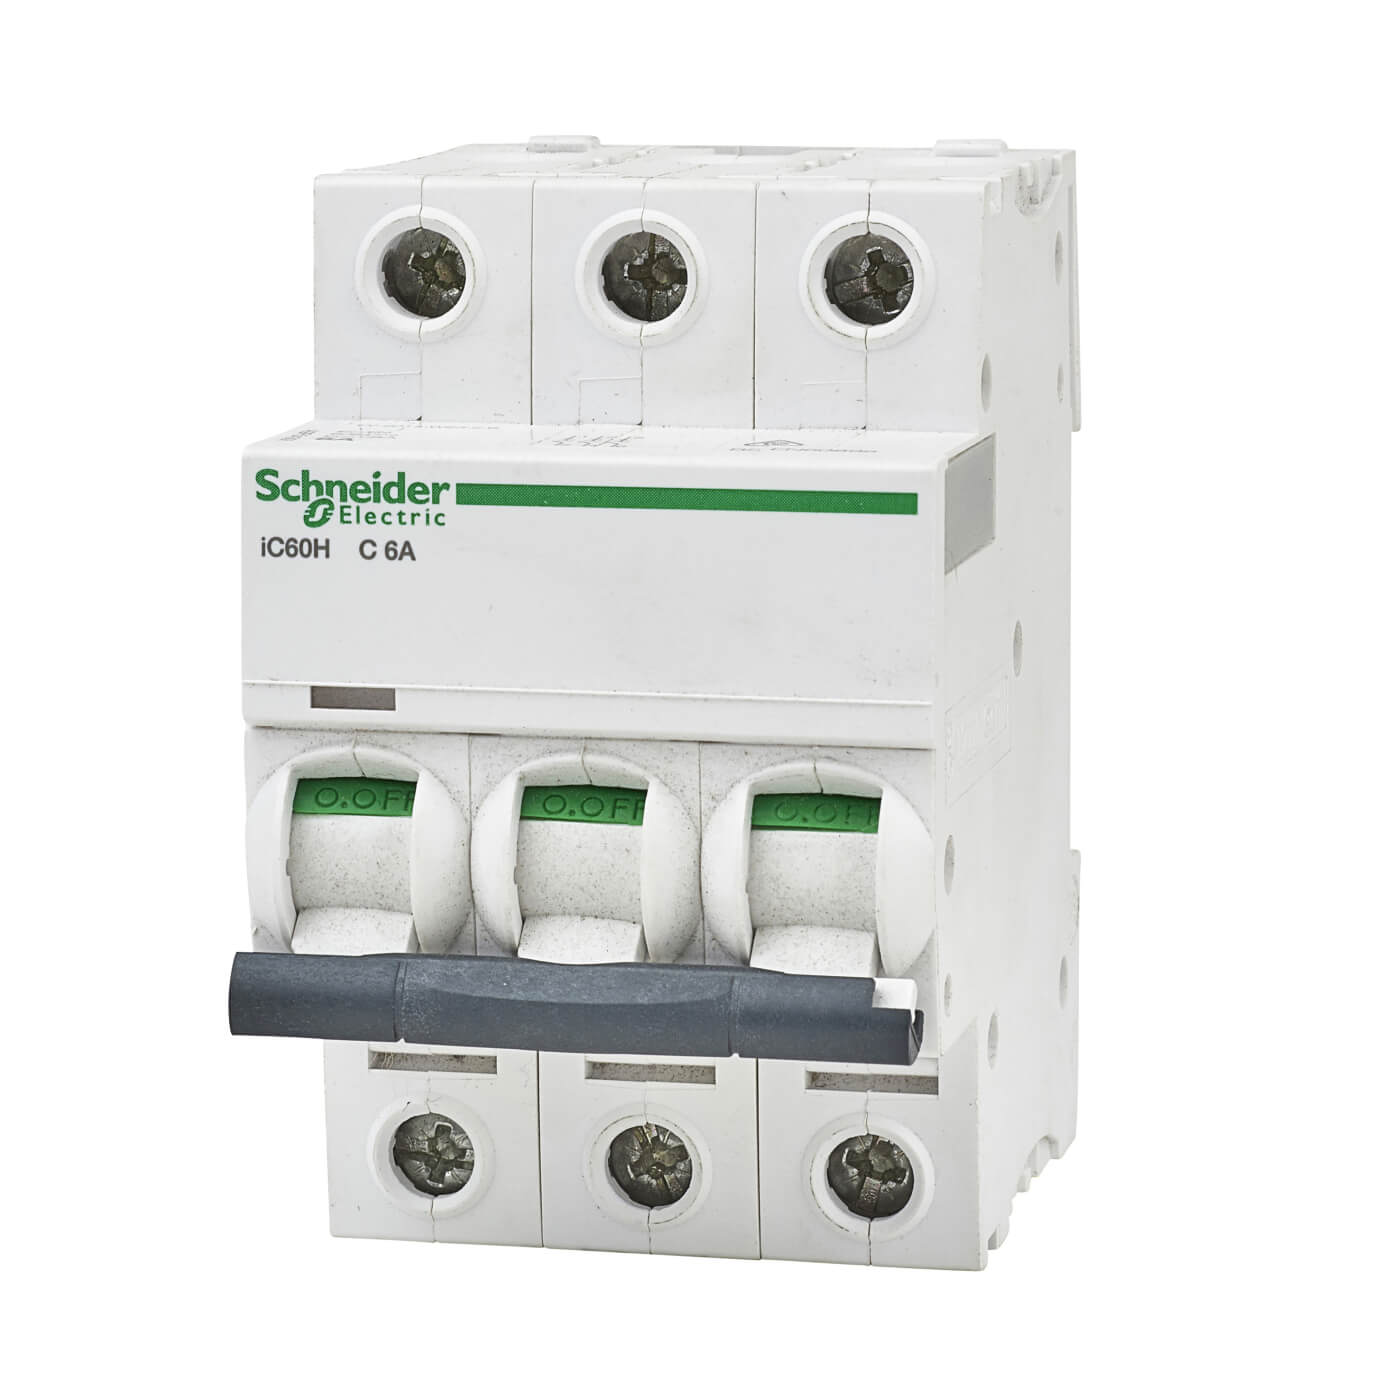 Schneider Acti 9 Isobar 6a 10ka Triple Pole 3 Phase Mcb